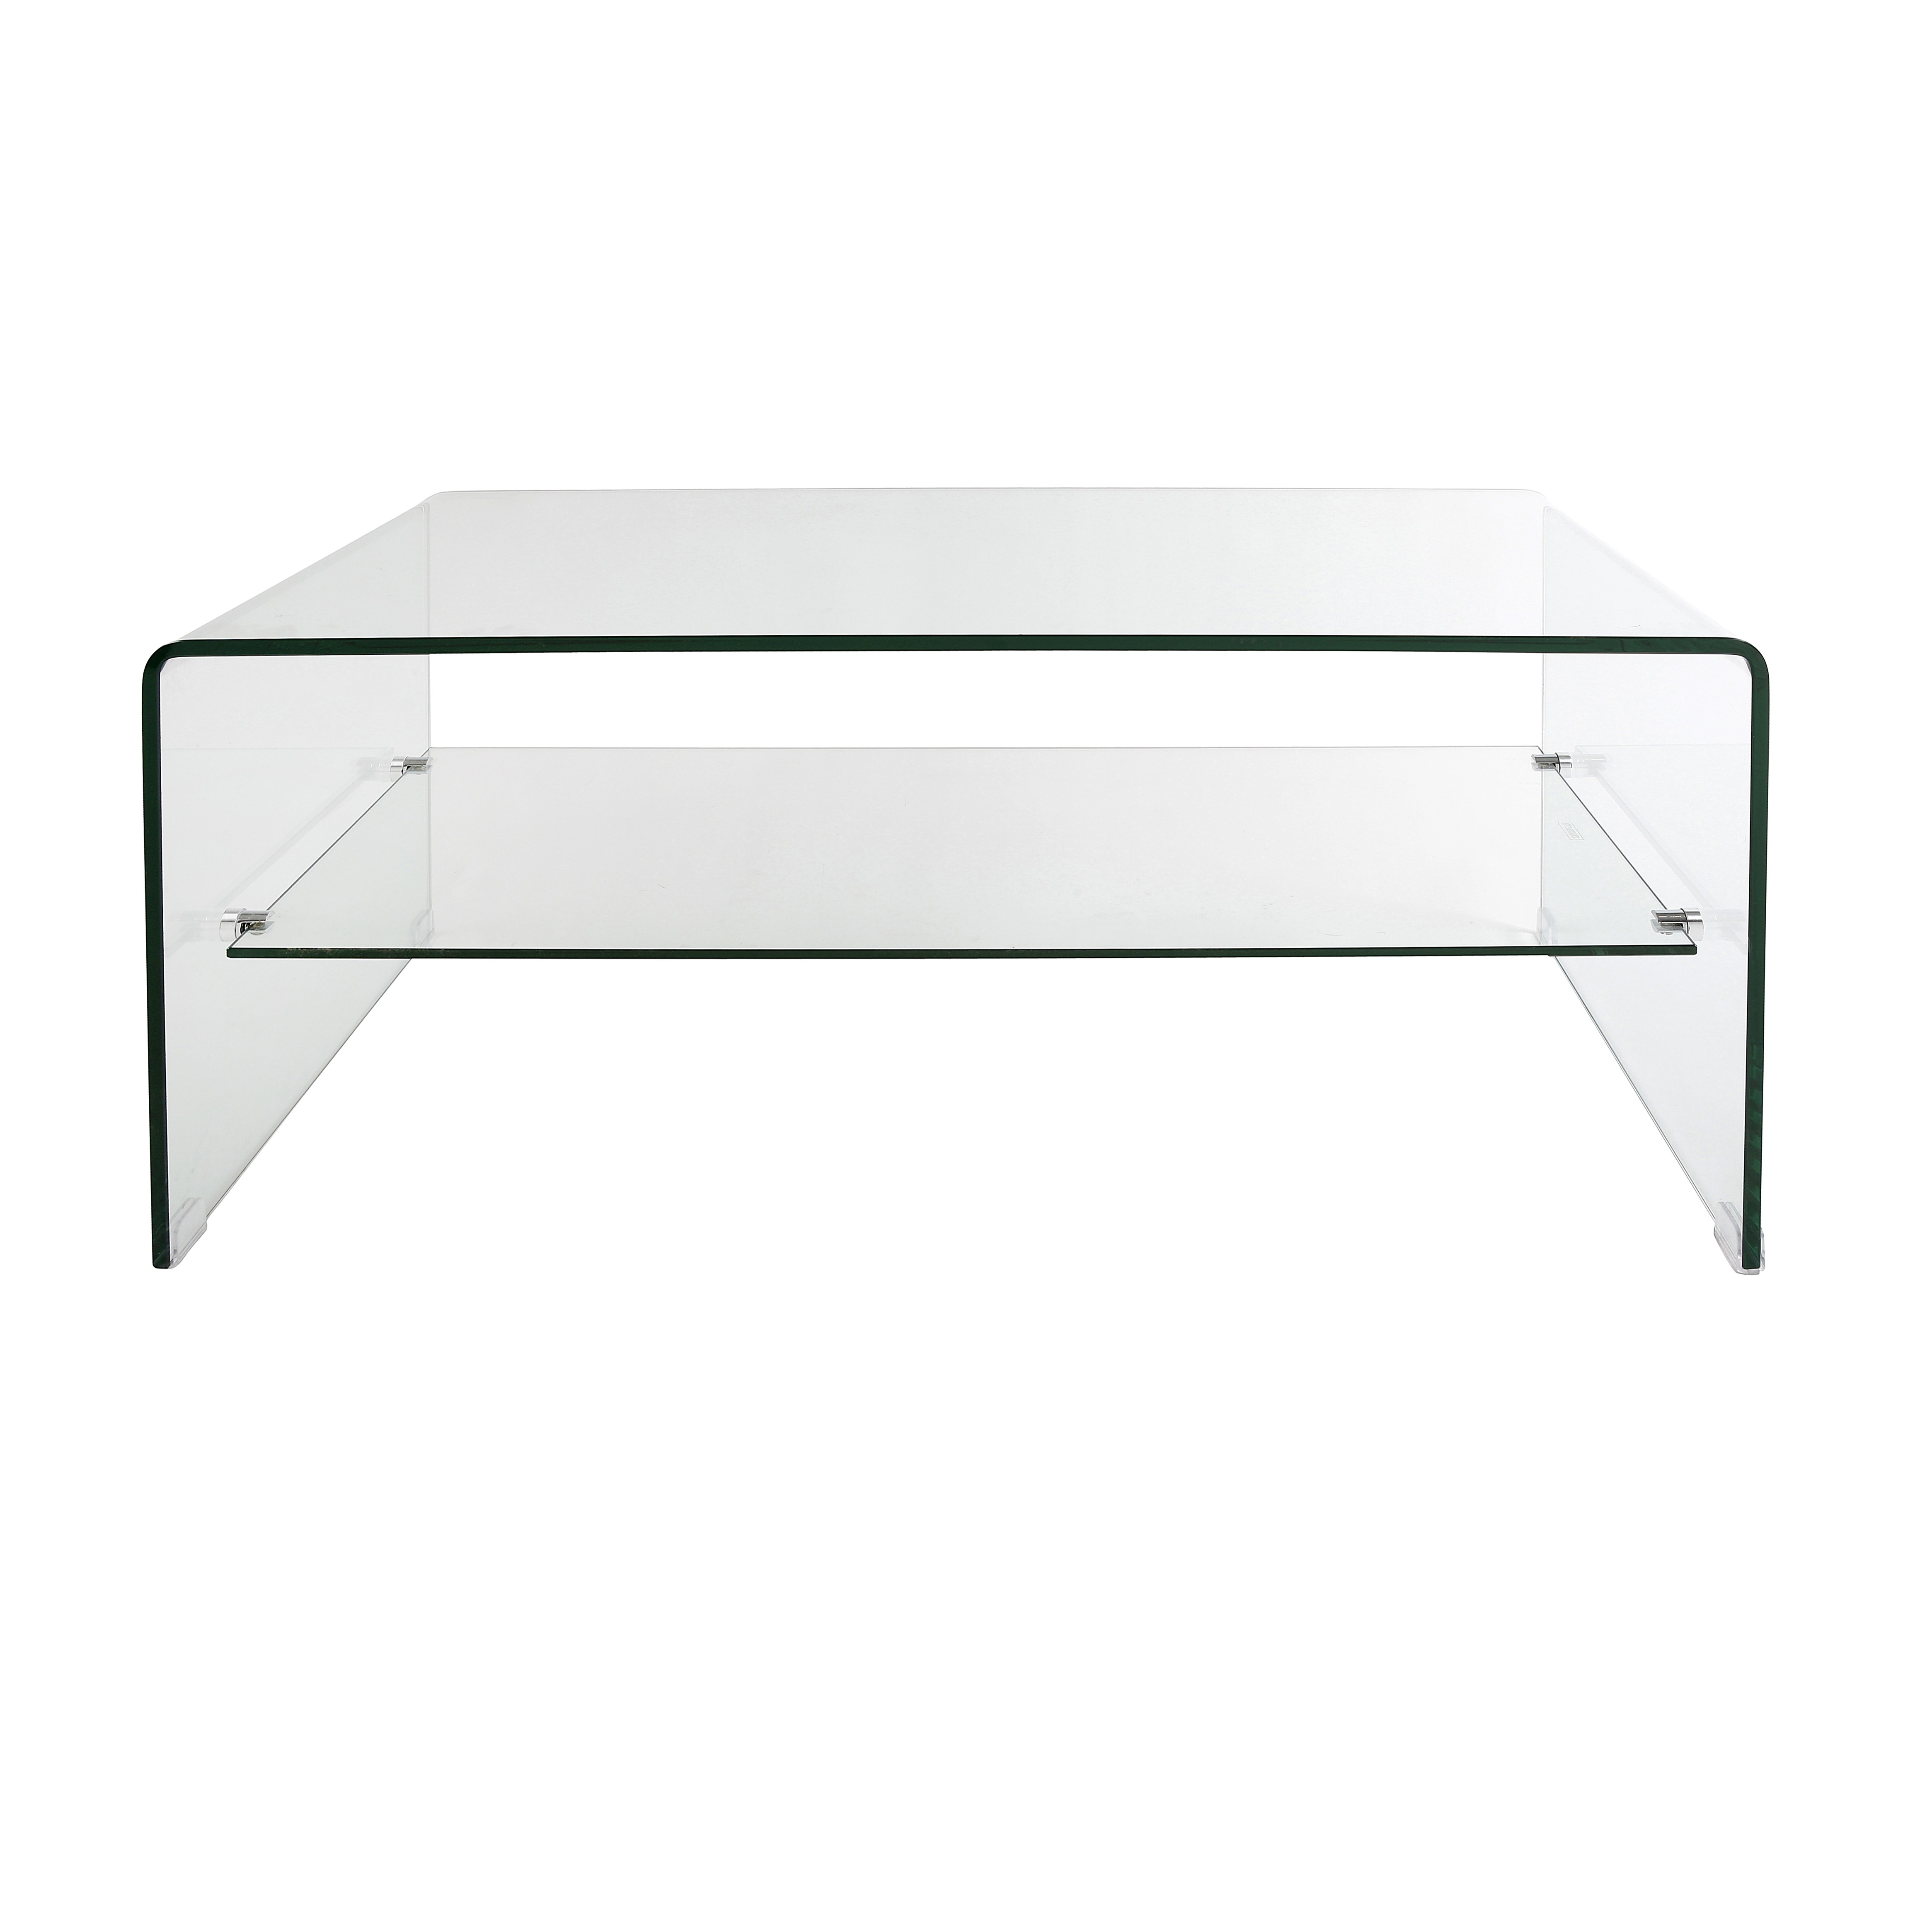 Popular Modern Acrylic Coffee Tables Pertaining To Modern Rectangle Clear Acrylic Coffee Table Come With Shelf Design (View 17 of 20)